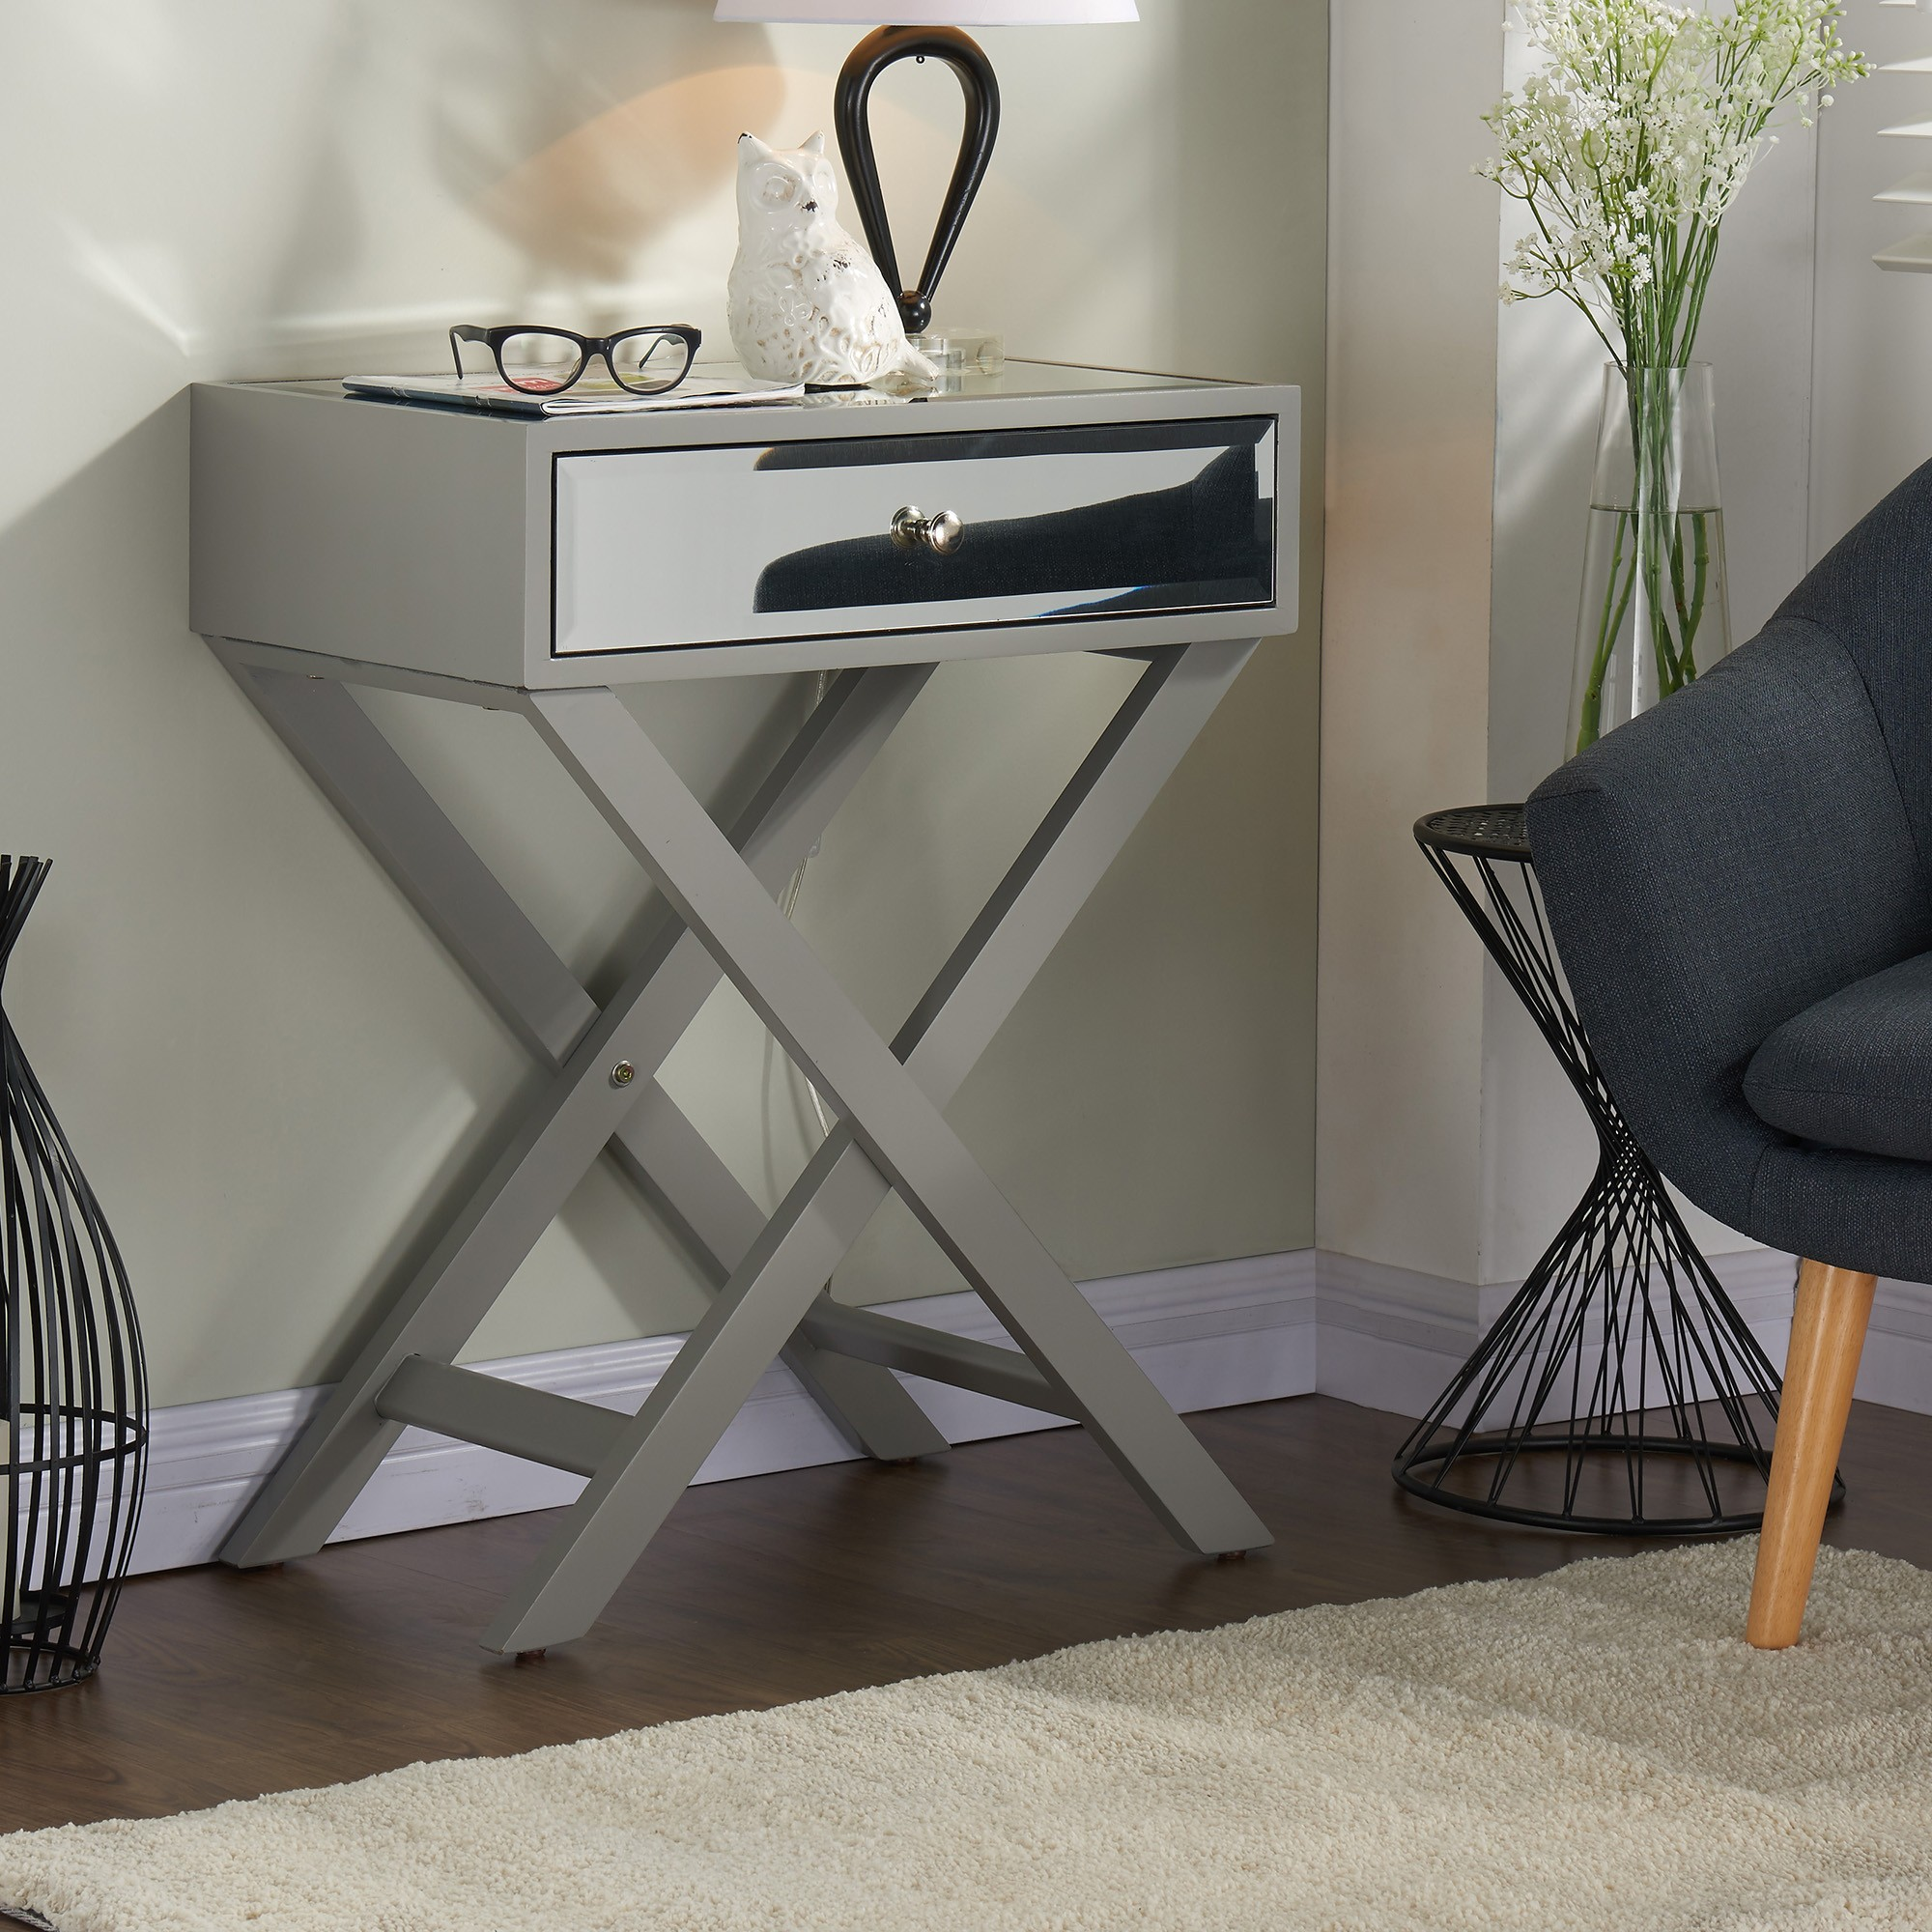 grey accent table modern amazing fretwork threshold gray attractive furniture design pertaining west elm wood bench black bedside bunnings swing set wichita best for coffee narrow